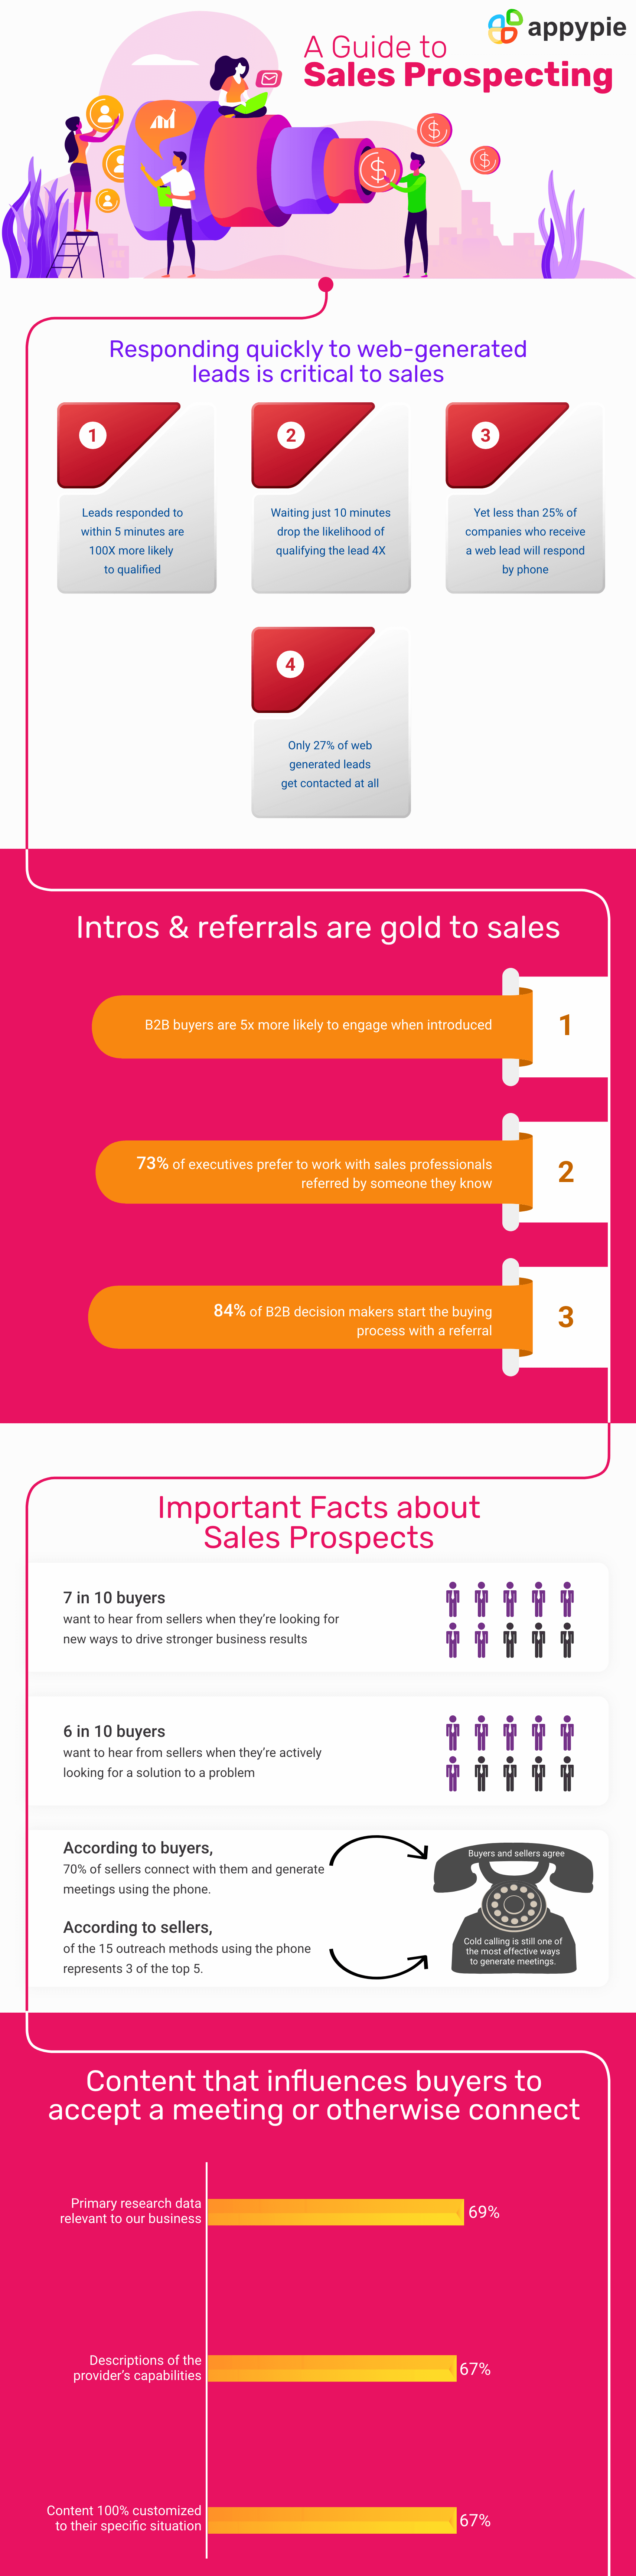 How to Perfect the Art of Sales Prospecting - Appy Pie